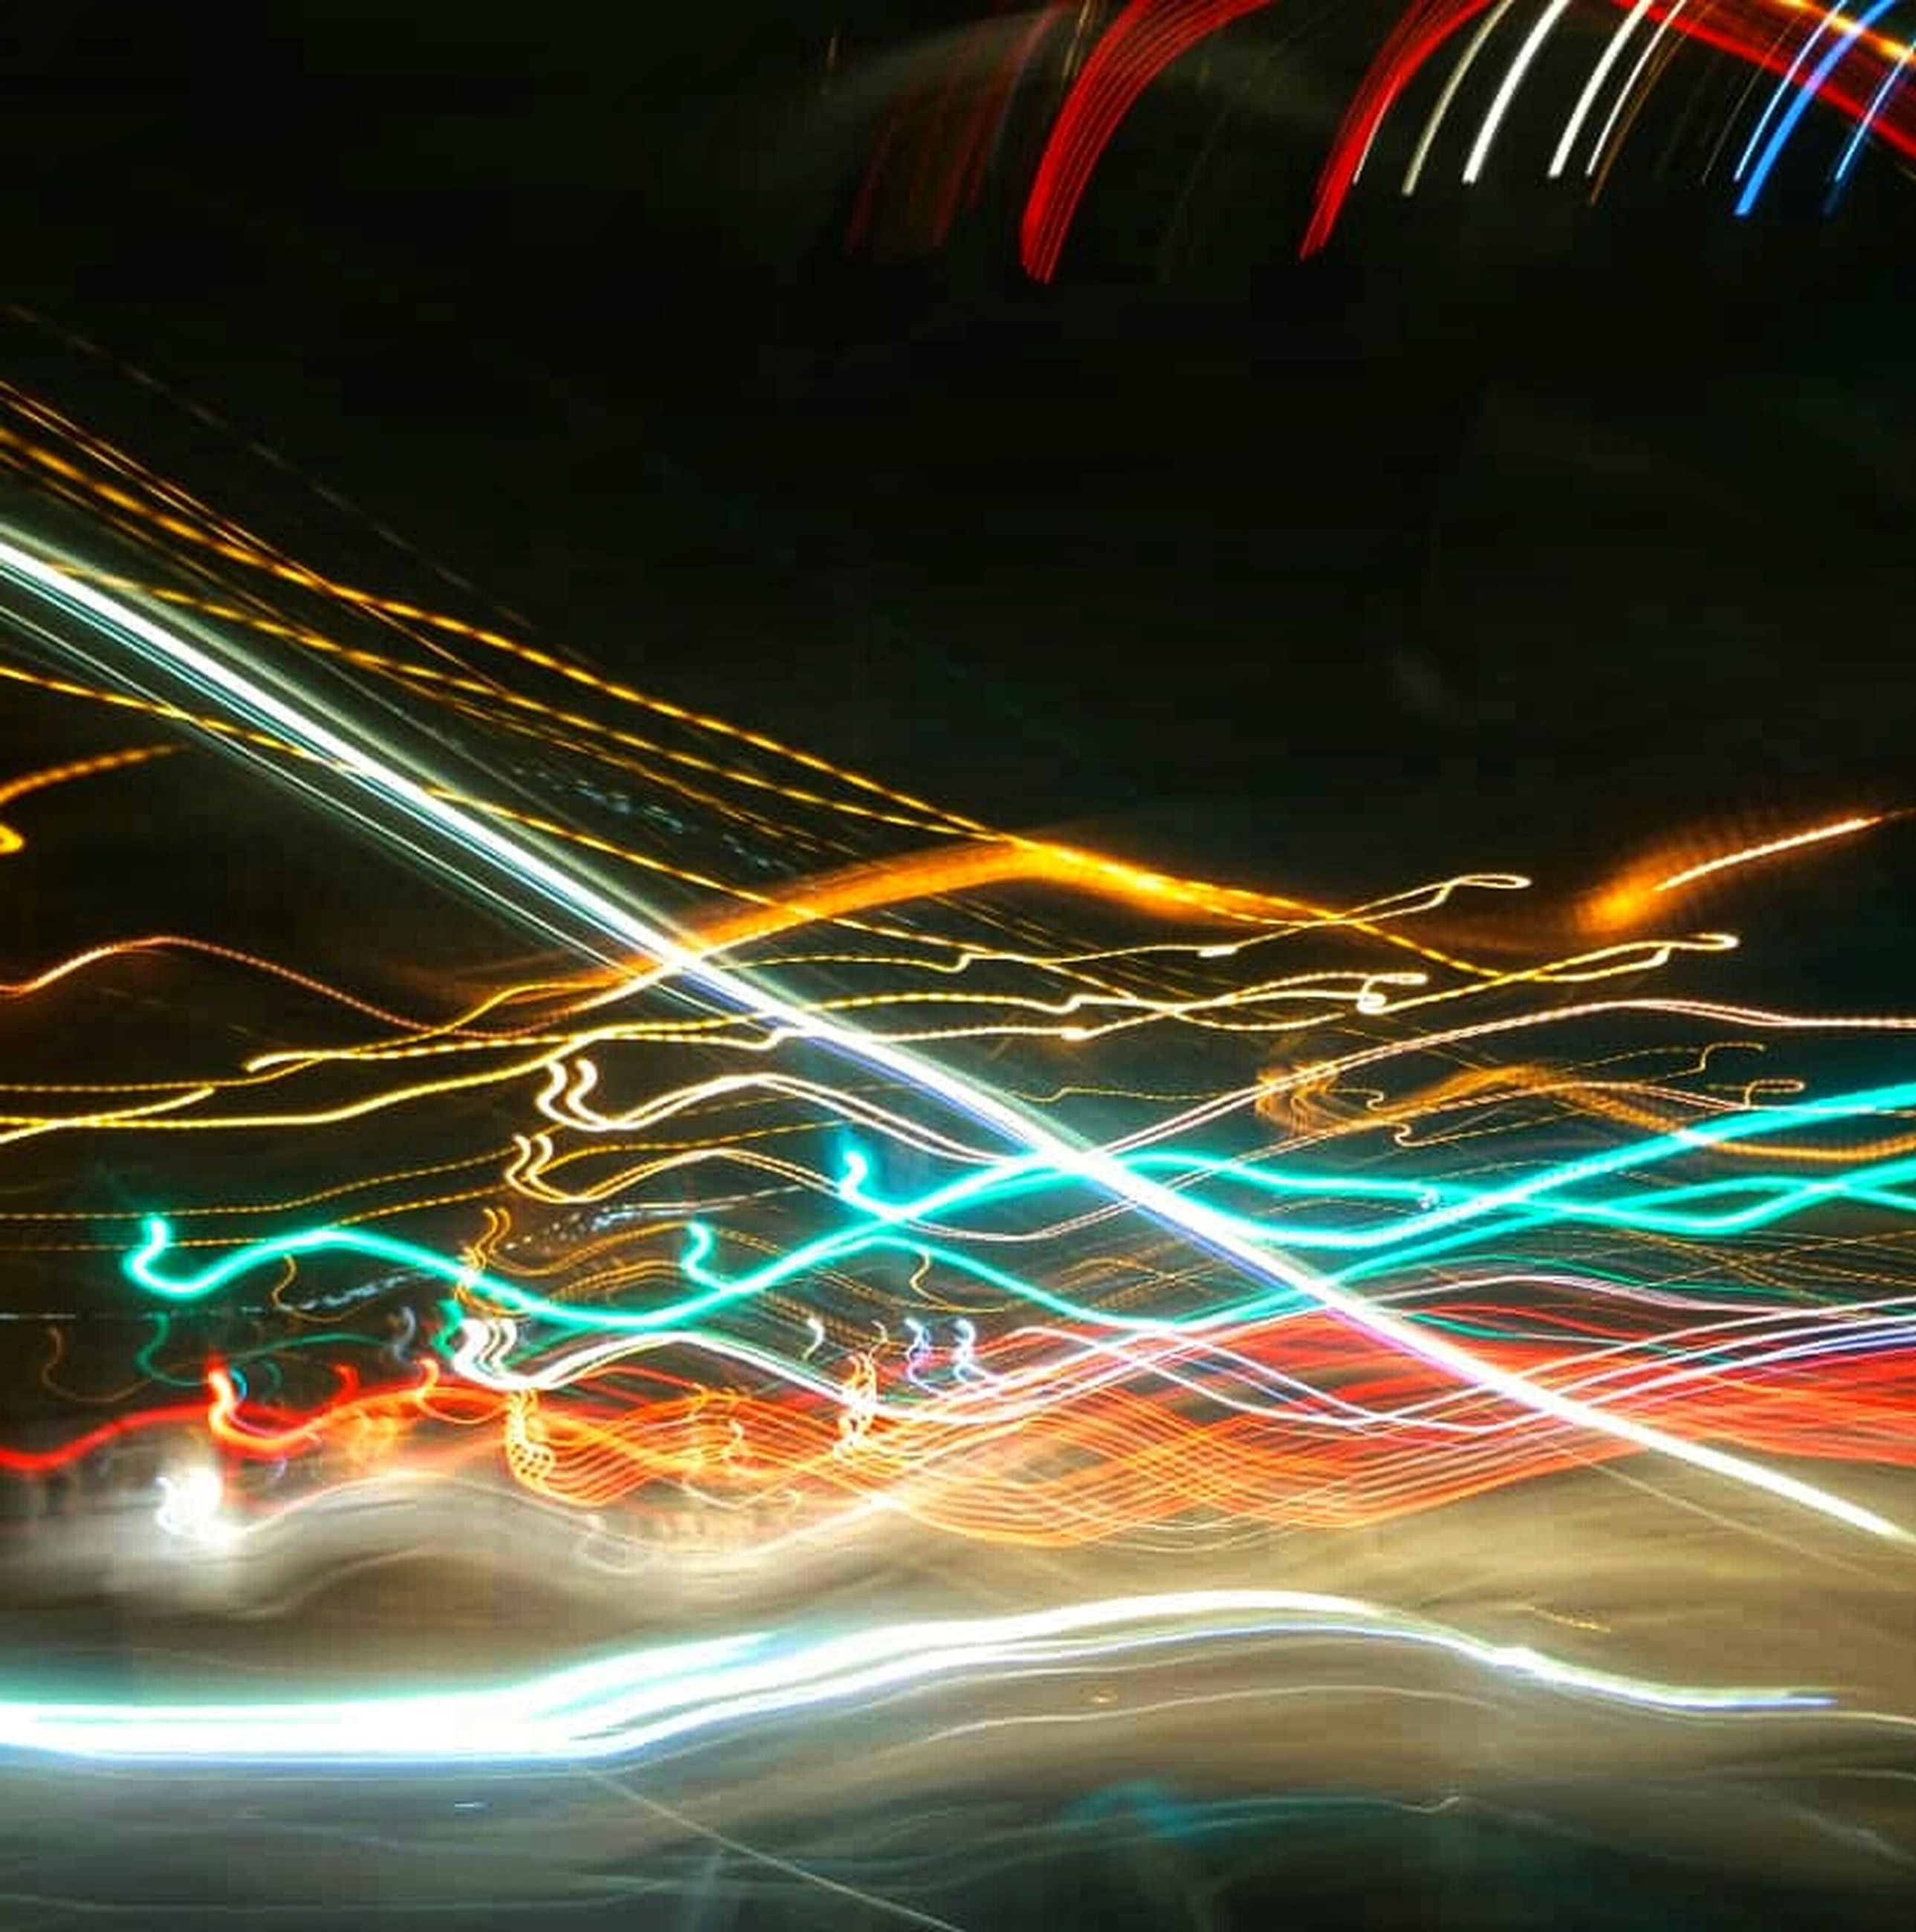 long exposure, motion, illuminated, speed, light trail, night, blurred motion, abstract, multi colored, technology, futuristic, data, no people, pattern, connection, light - natural phenomenon, glowing, wireless technology, communication, internet, flowing, fiber optic, complexity, black background